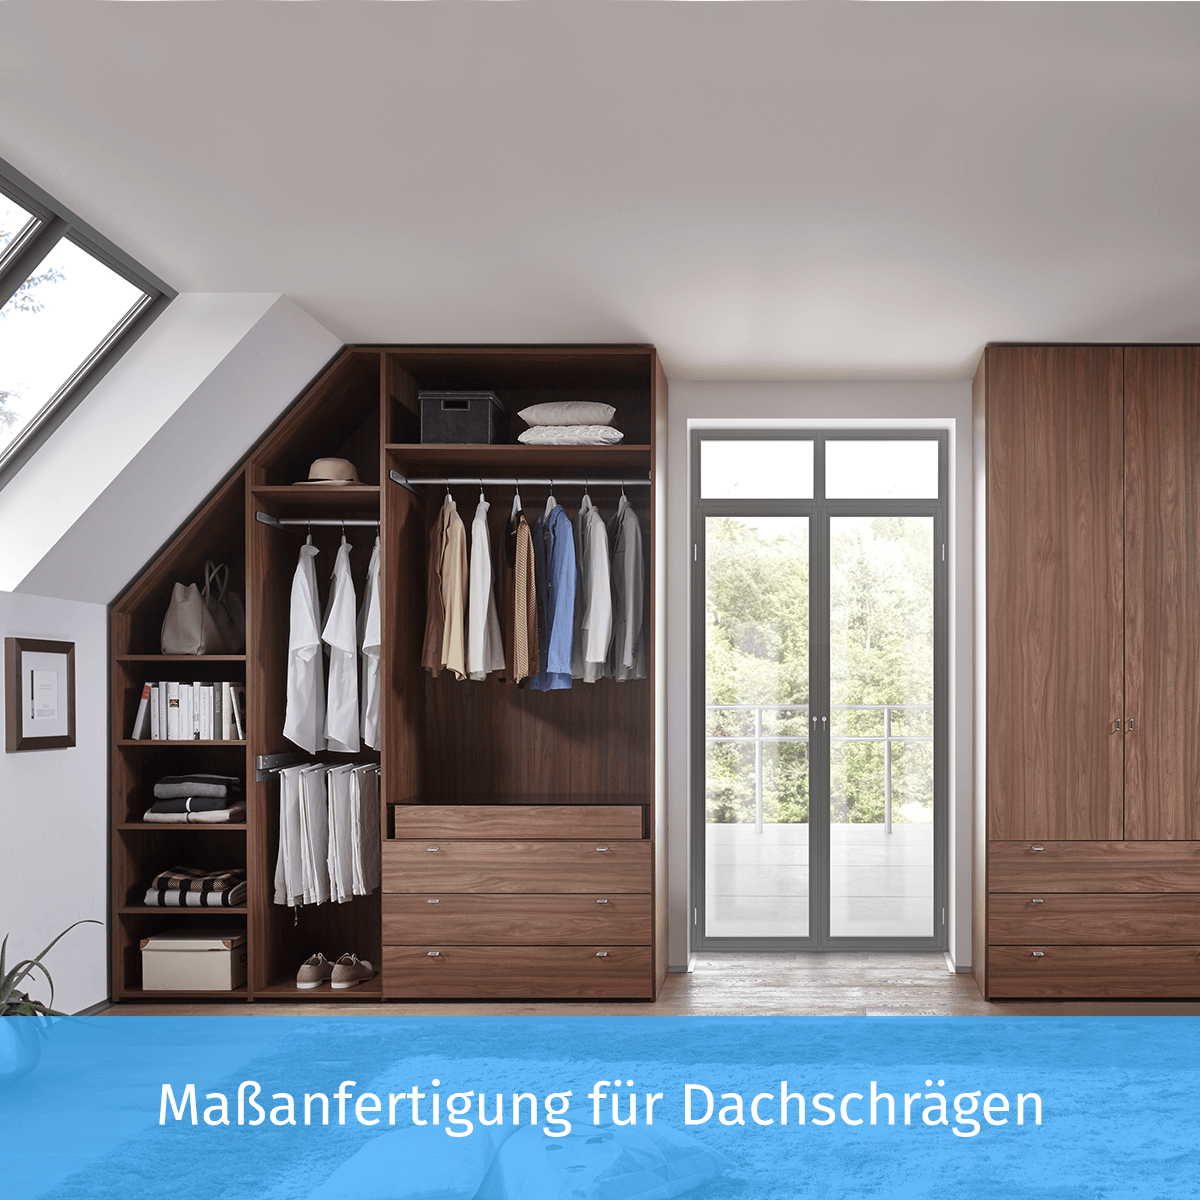 mein schrank nach ma einfach online konfigurieren und. Black Bedroom Furniture Sets. Home Design Ideas